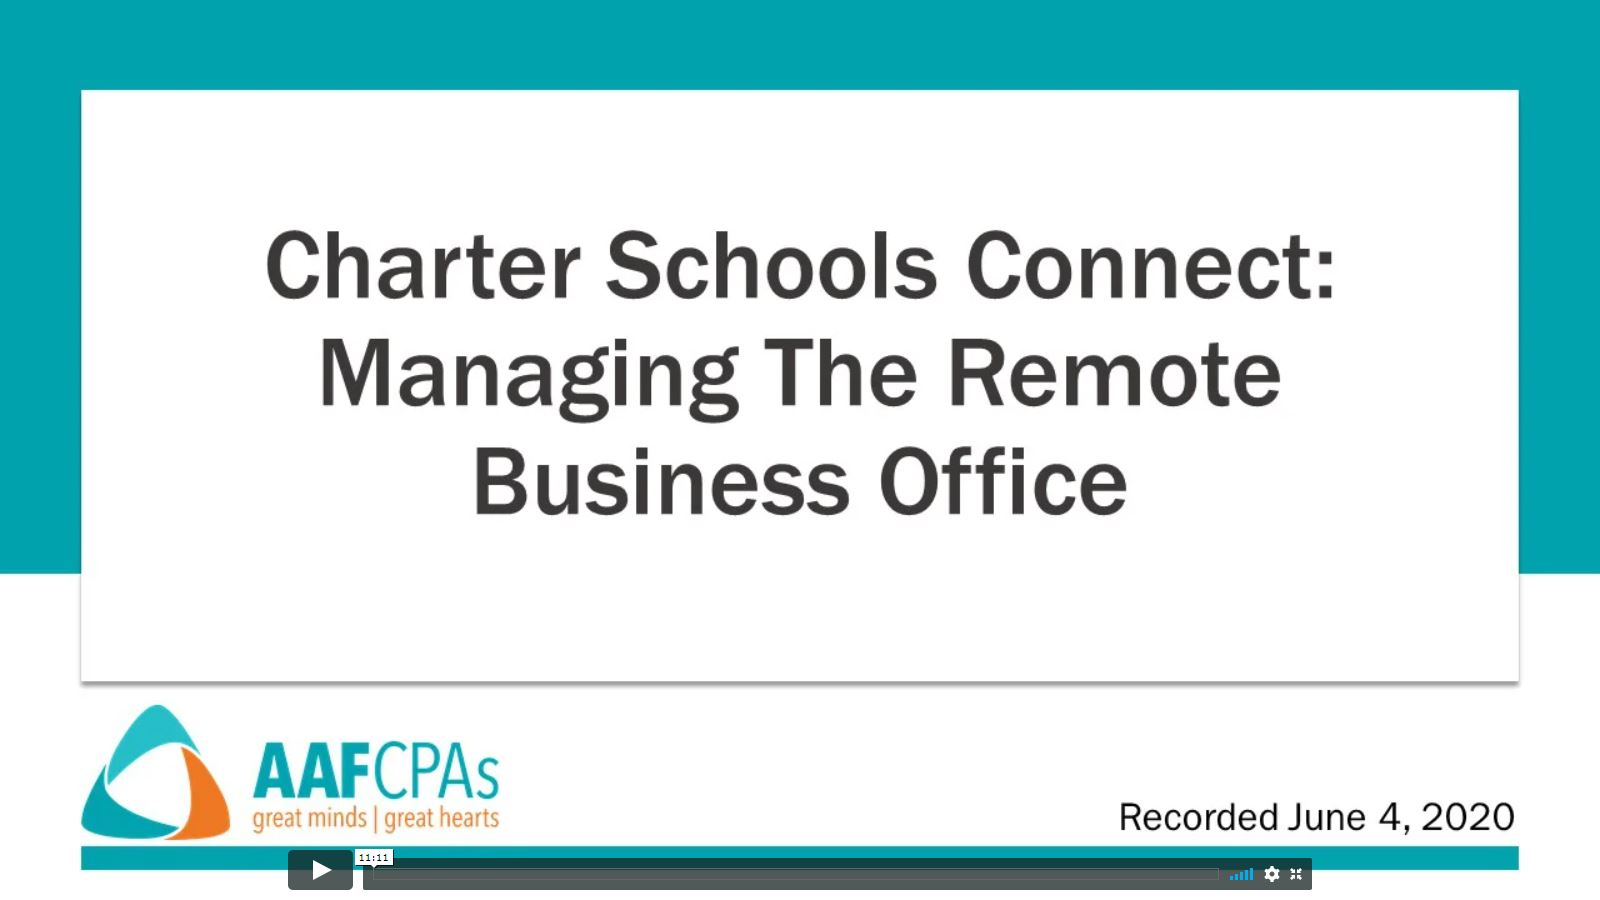 Charter Schools Connect: Managing the Remote Business Office